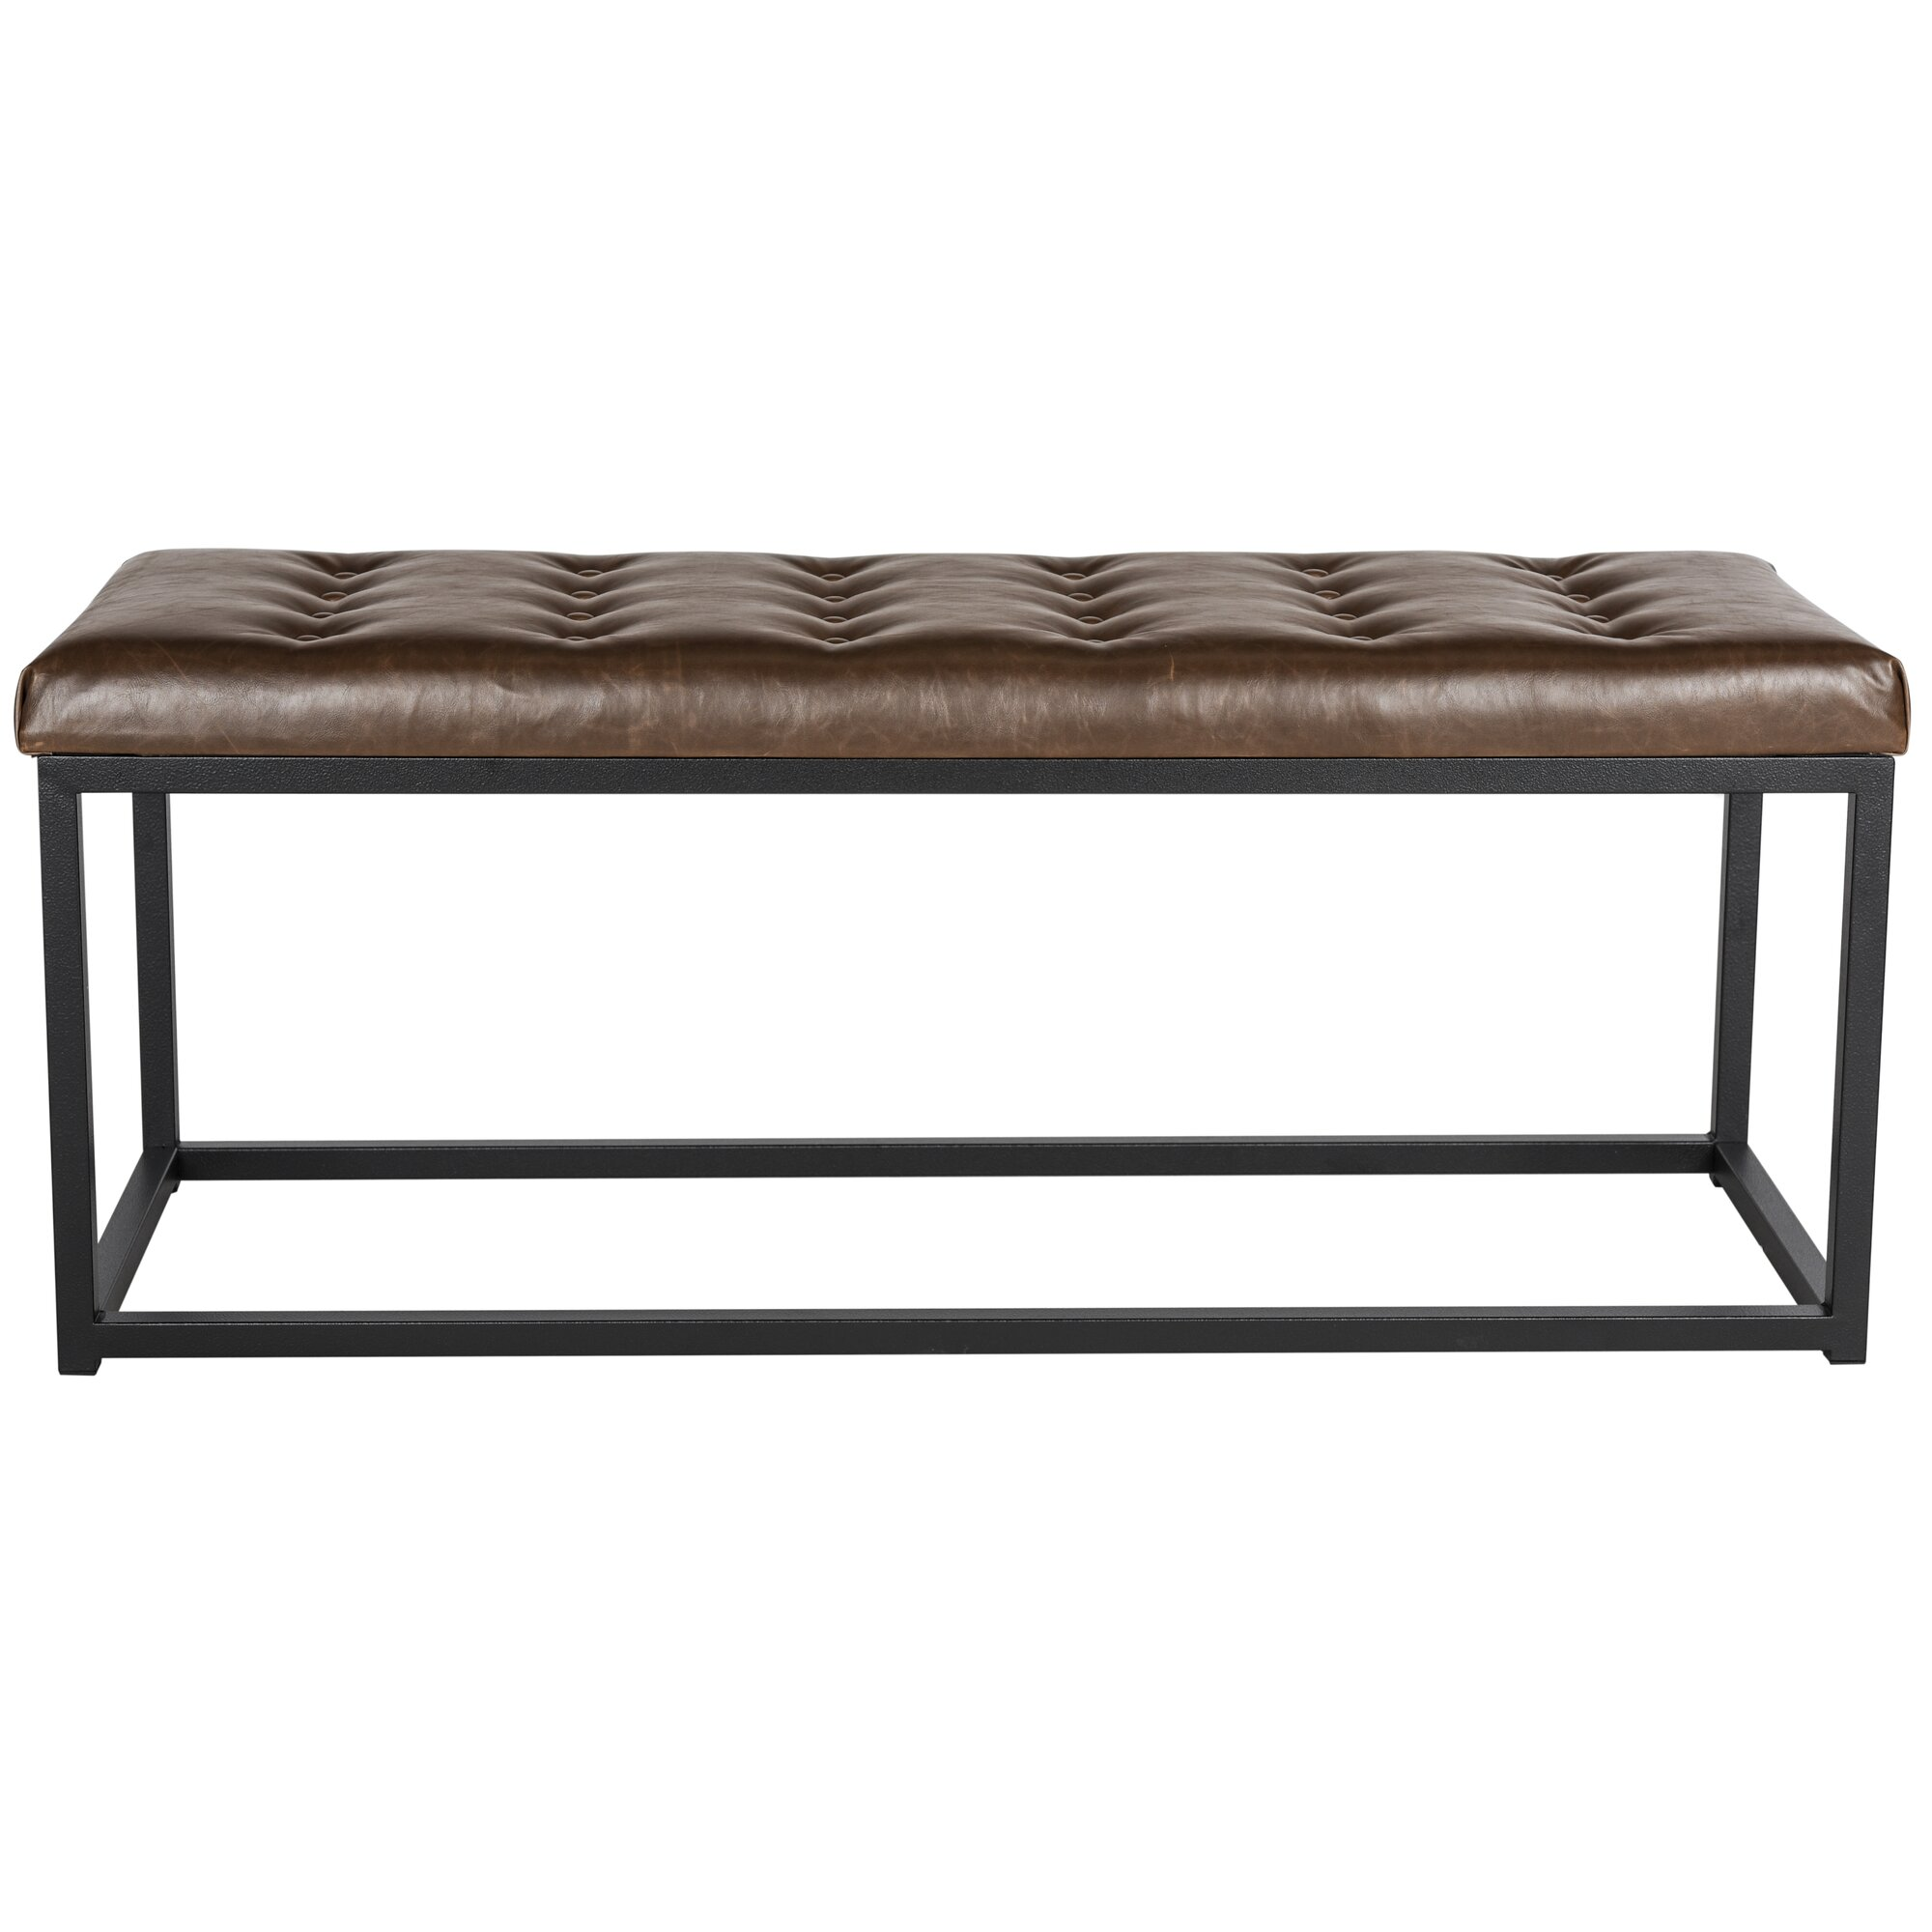 Bedroom bench with arms - Marinda Bedroom Bench